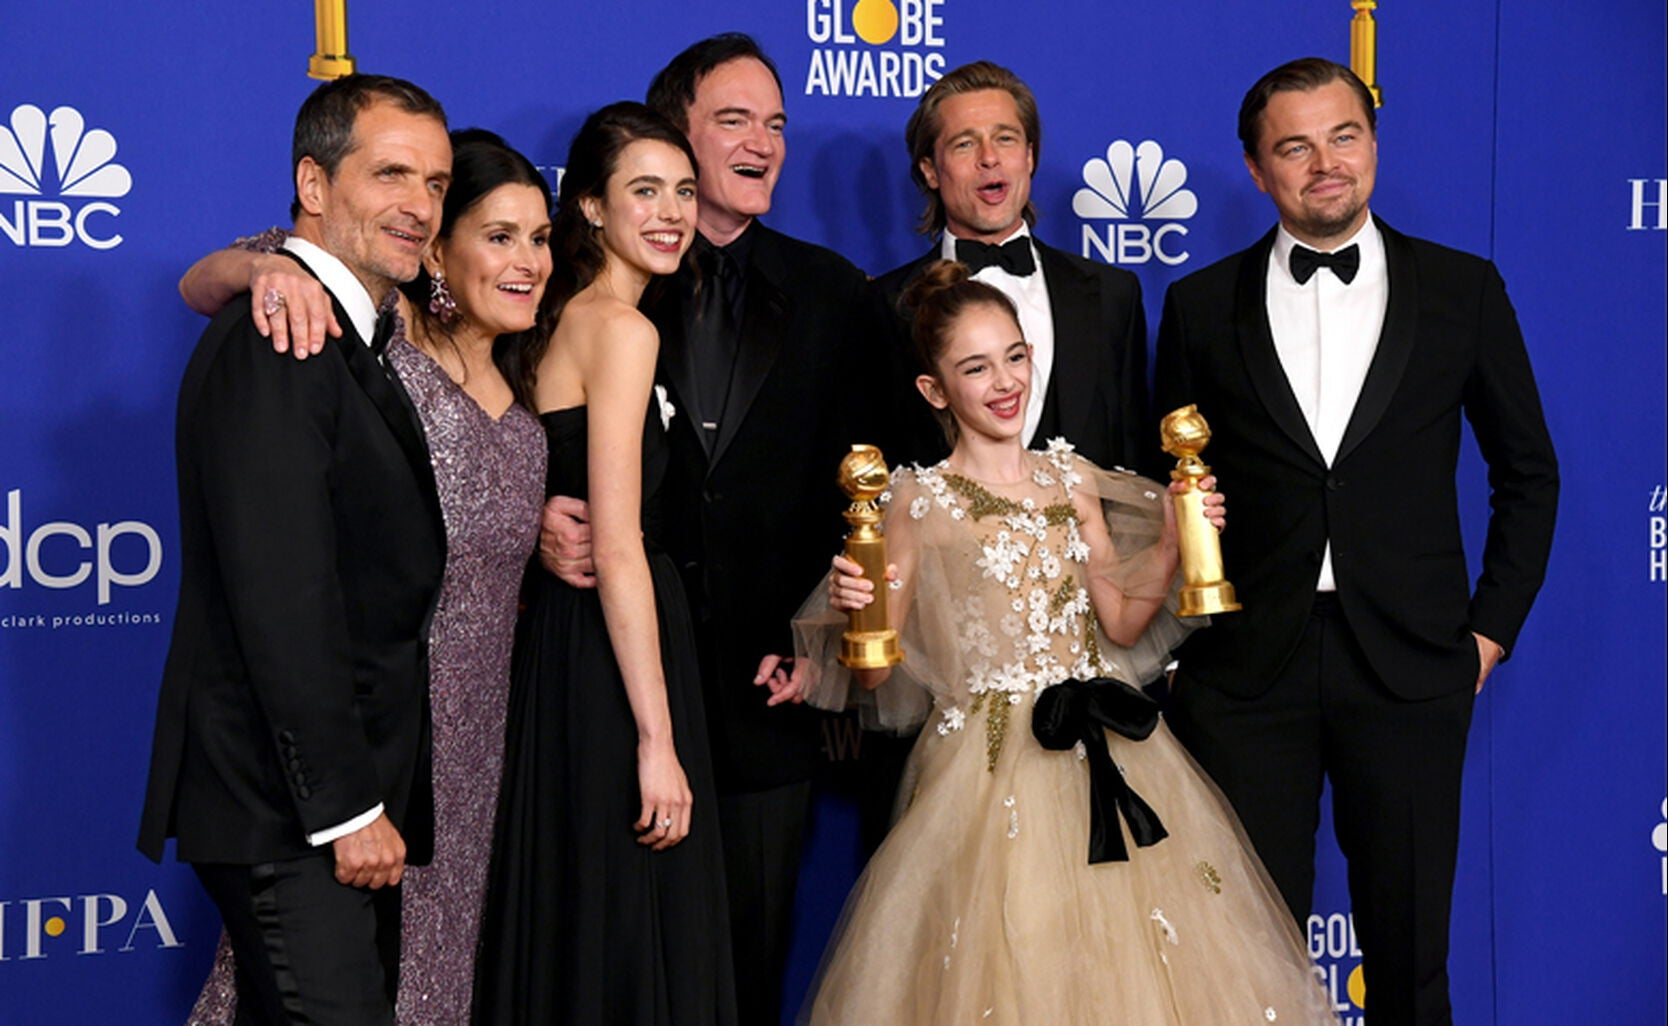 David Heyman, Shannon McIntosh, Margaret Qualley, Quentin Tarantino, Brad Pitt, Julia Butters, and Leonardo DiCaprio